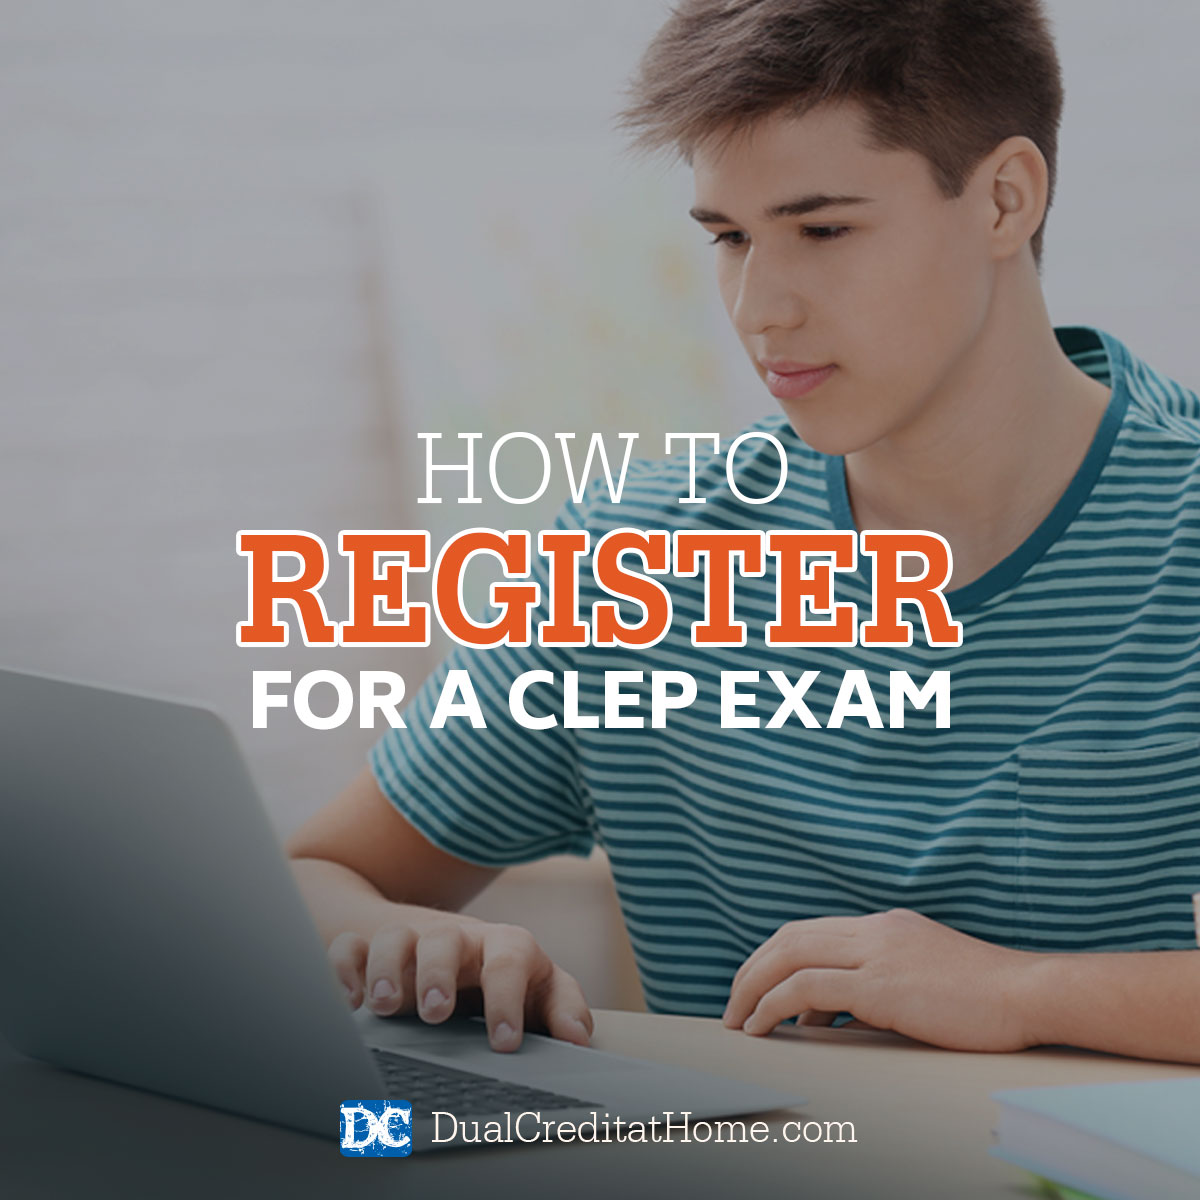 How to Register for a CLEP Exam